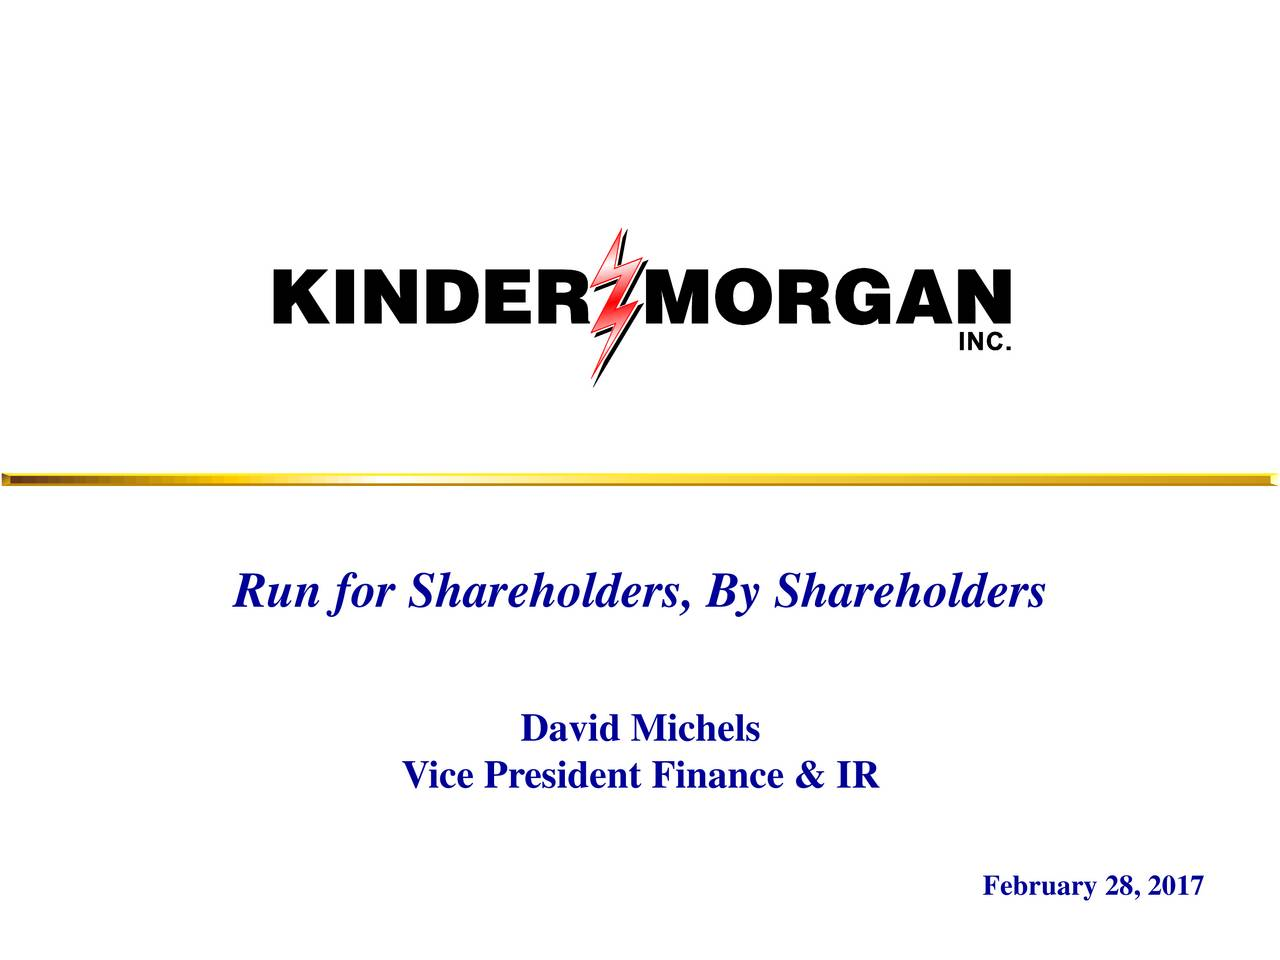 David Michels Vice President Finance & IR February 28, 2017